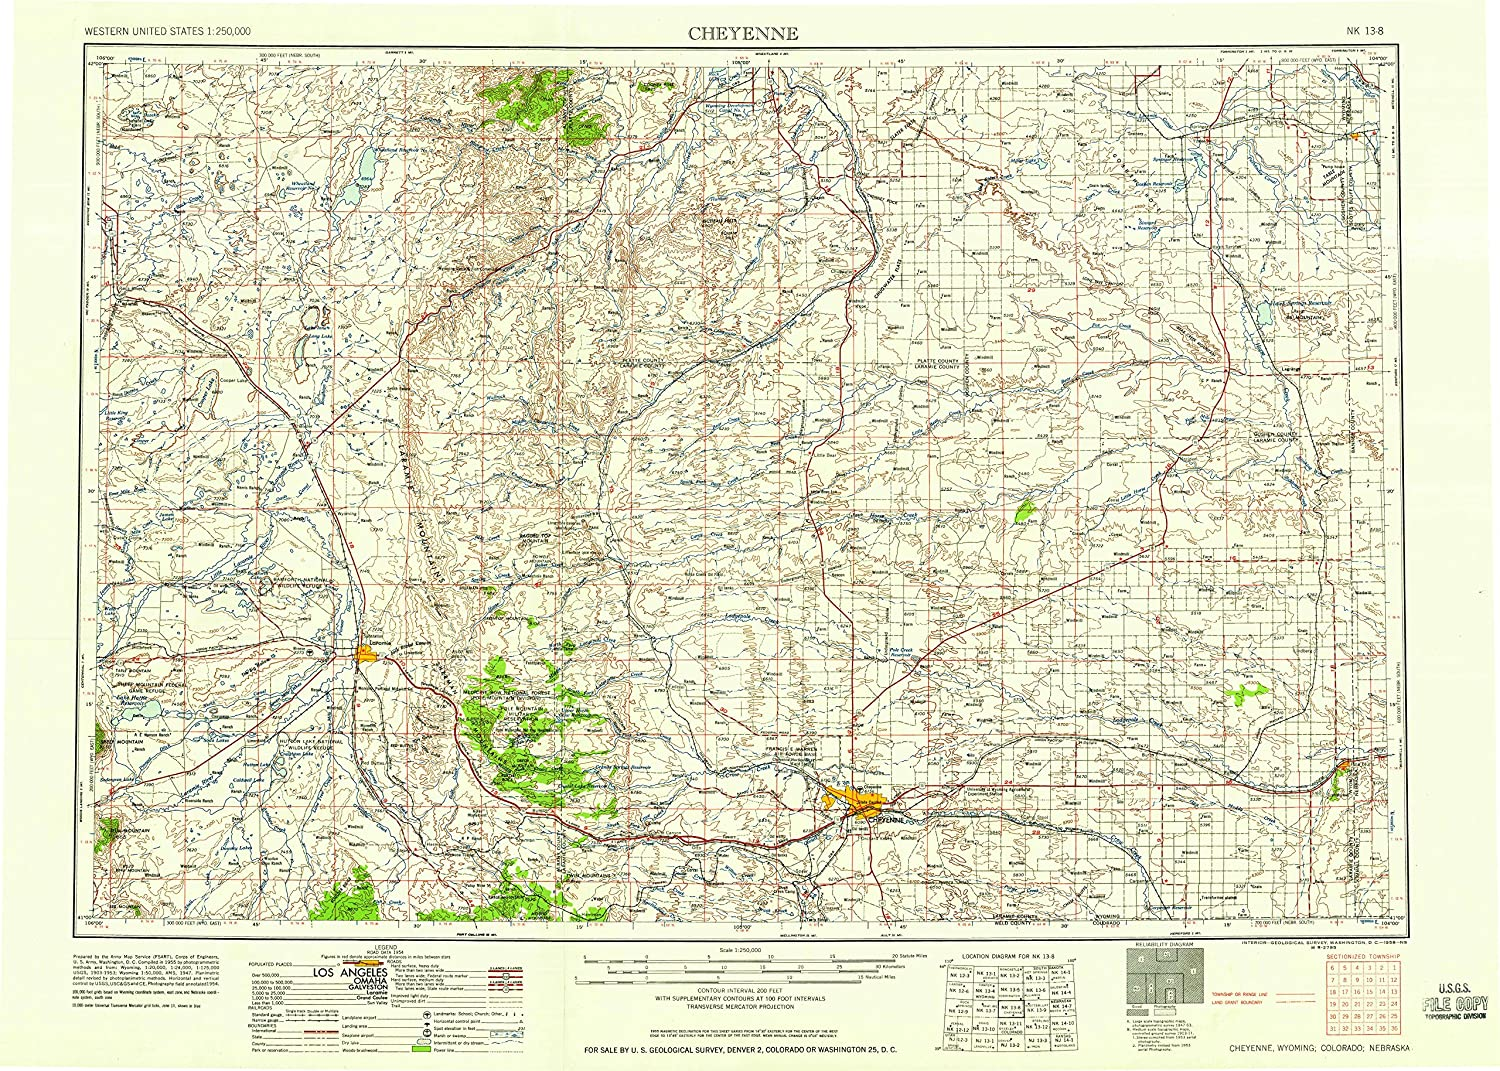 wyoming map, salish map, hartford map, chicago map, abilene map, sioux map, san juan metro map, new mexico map, helena map, northern thai map, colorado map, dodge city map, sherman denison map, city of deadwood sd map, colter bay village map, denver map, catlettsburg map, las vegas map, ft. laramie map, pueblo map, on cheyenne map